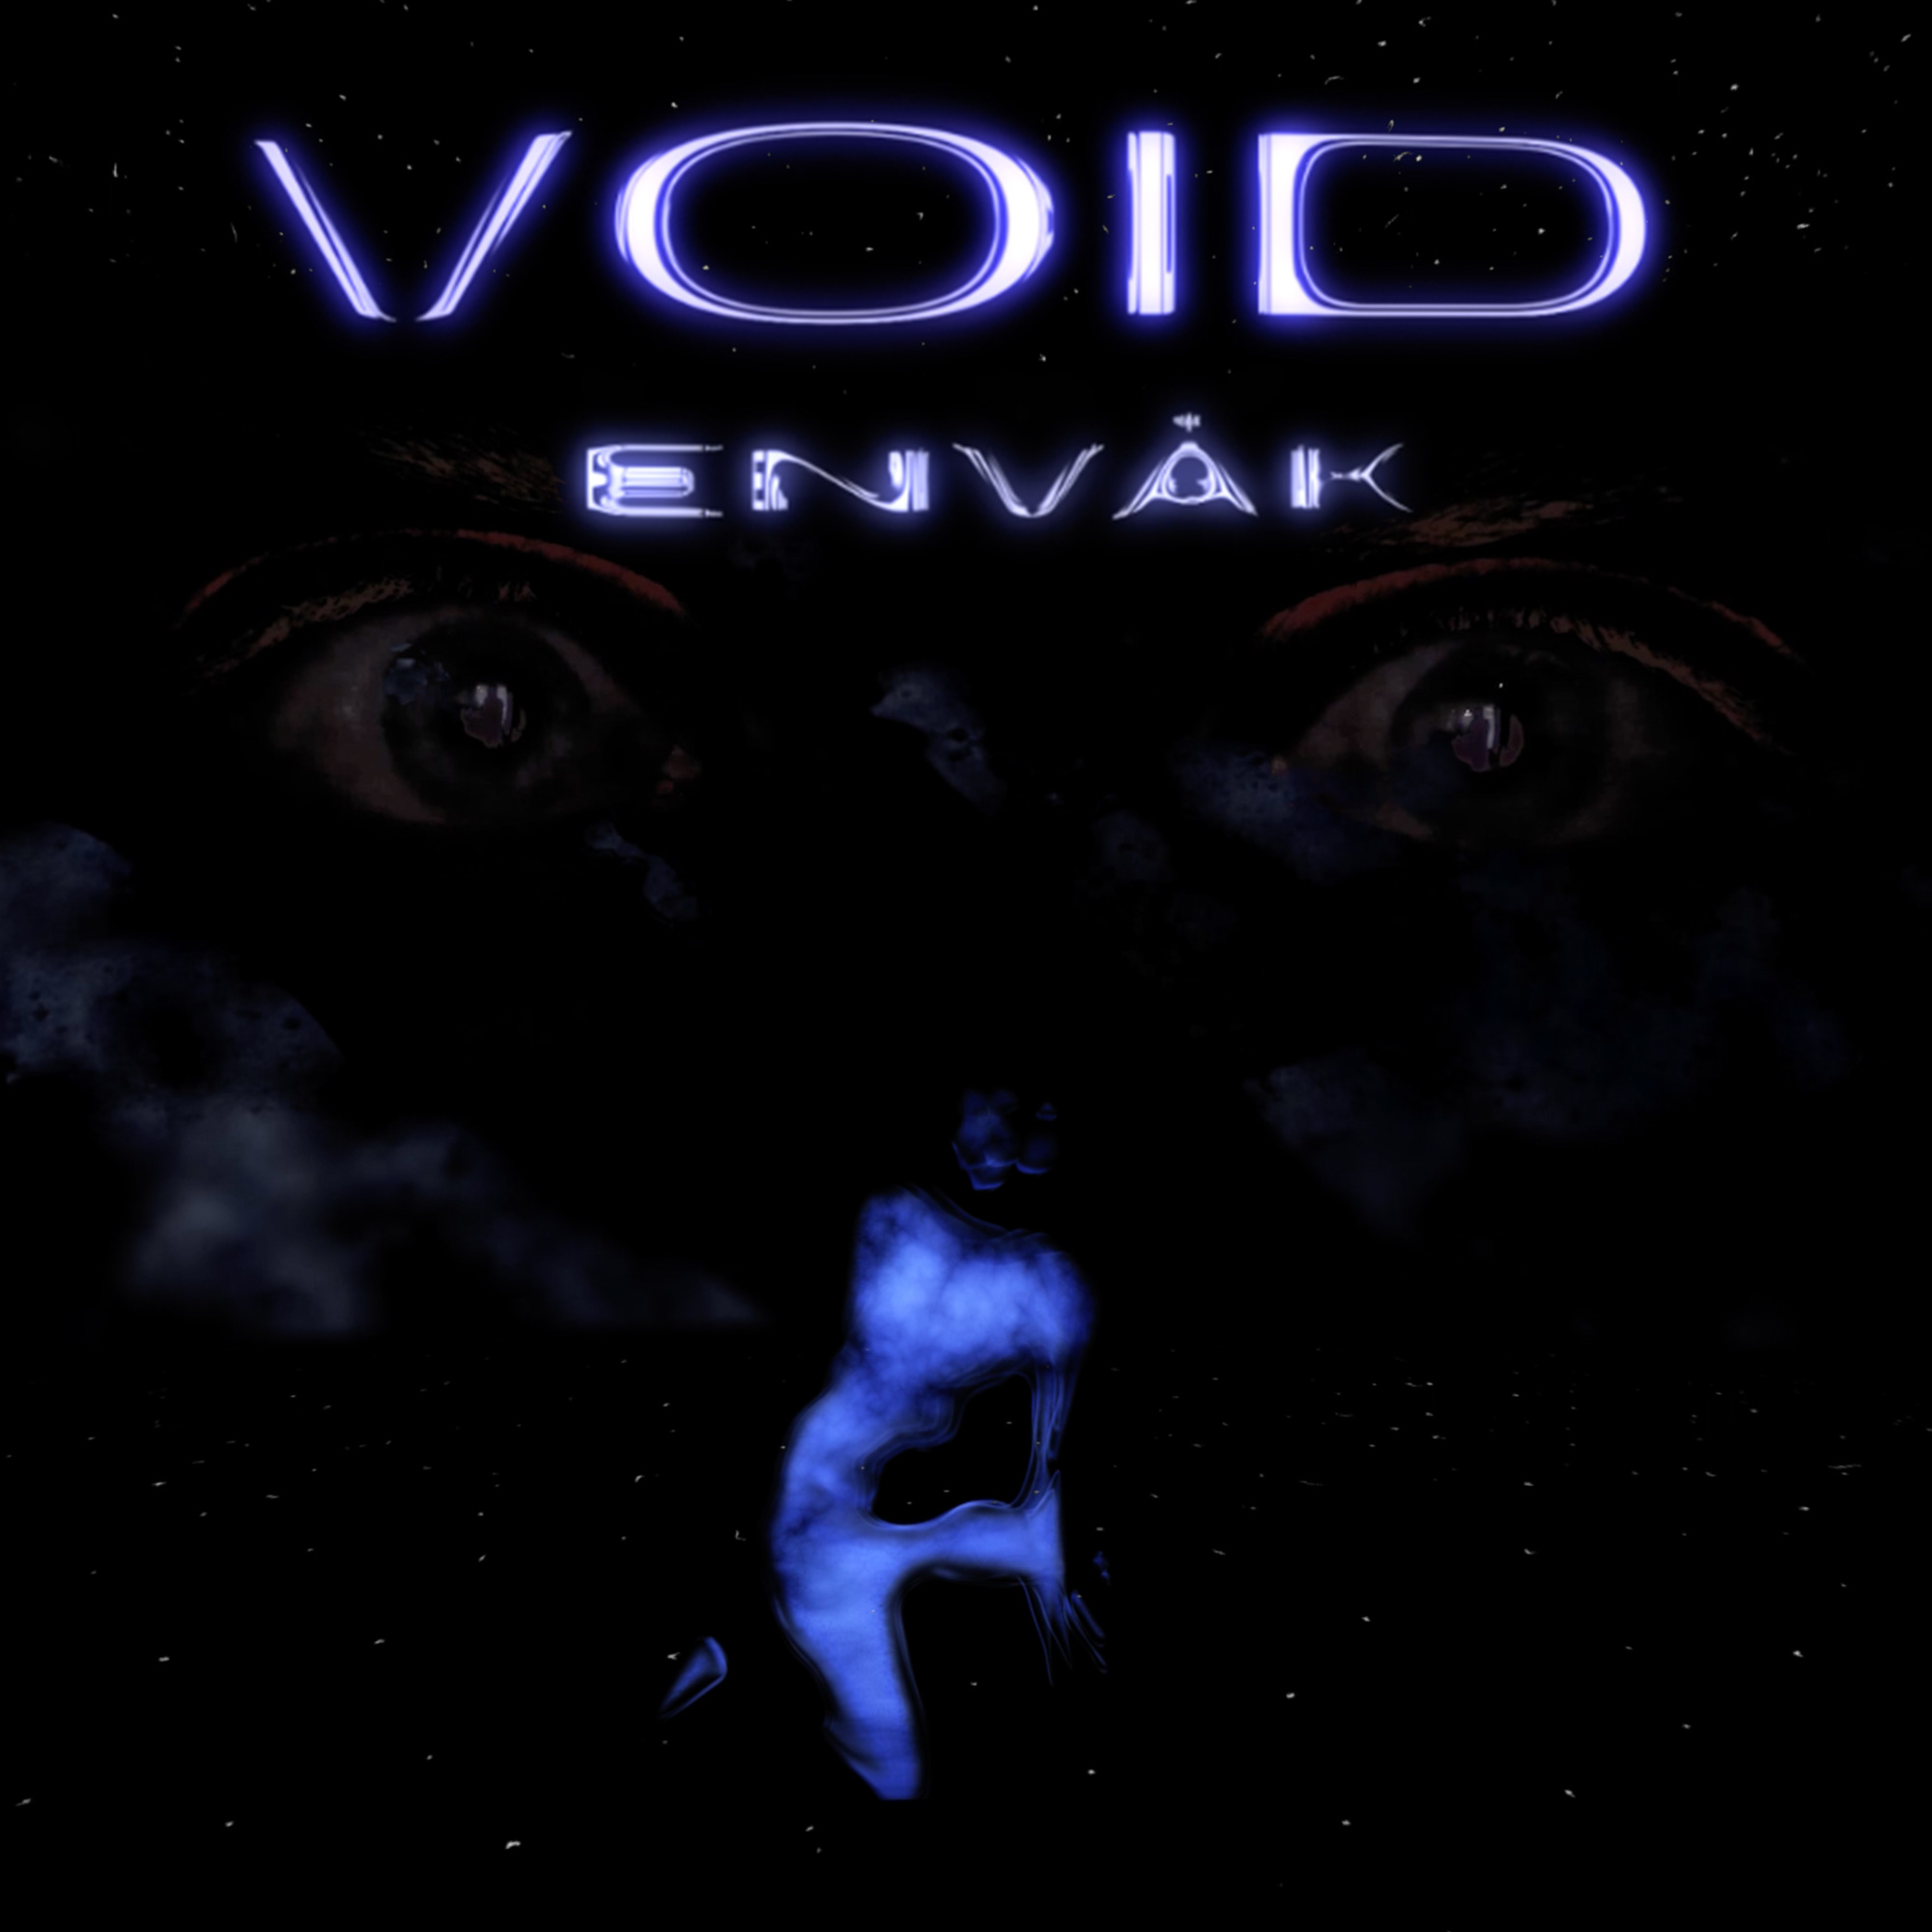 vr music video media artist envak